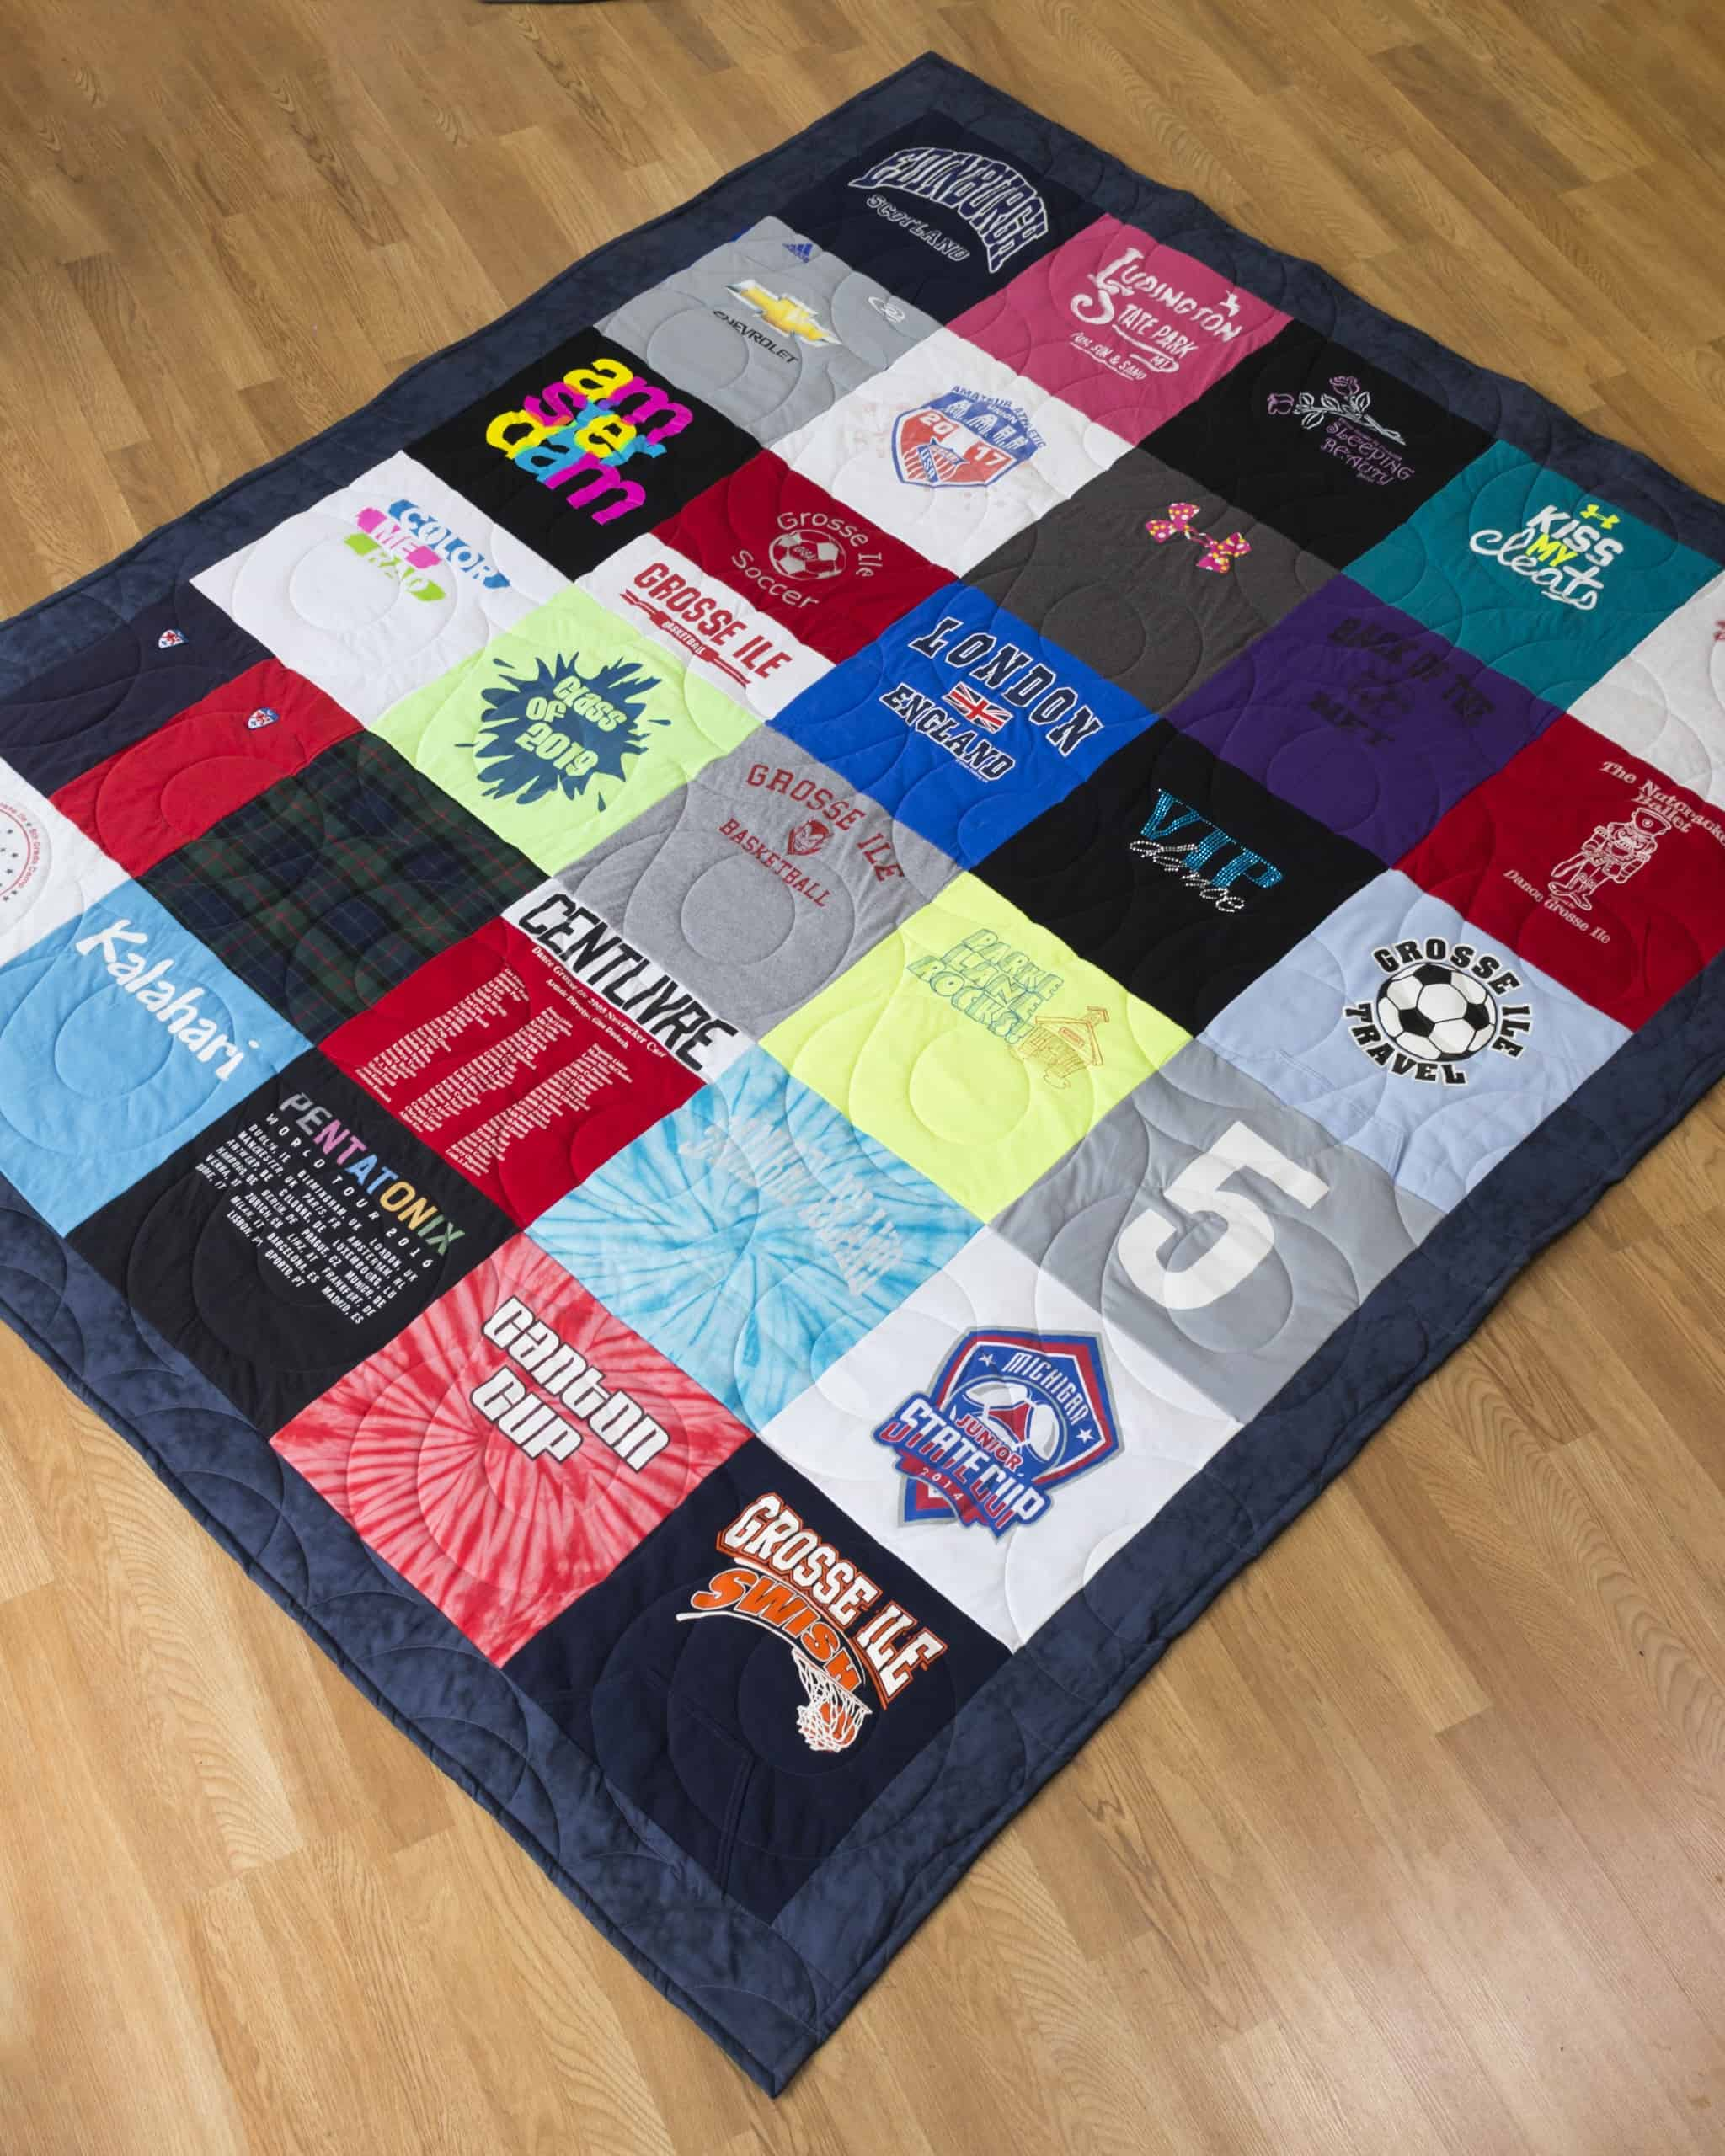 Quilt shown has a Traditional Layout, which looks like a grid